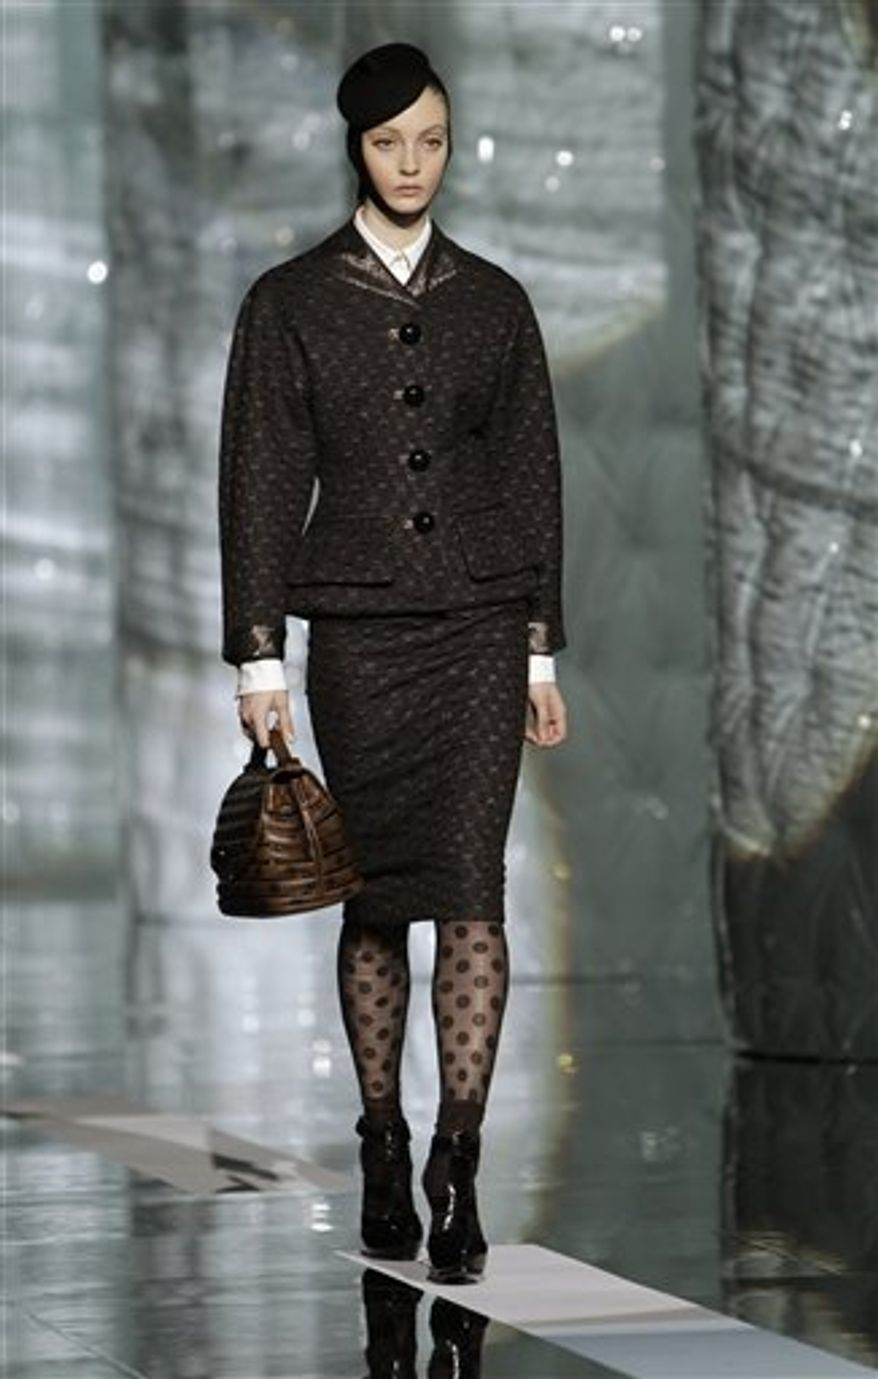 Models parade down the runway at the conclusion of the Marc Jacobs Fall 2011 show during Fashion Week in New York, Monday, Feb. 14, 2011. (AP Photo/Kathy Willens)